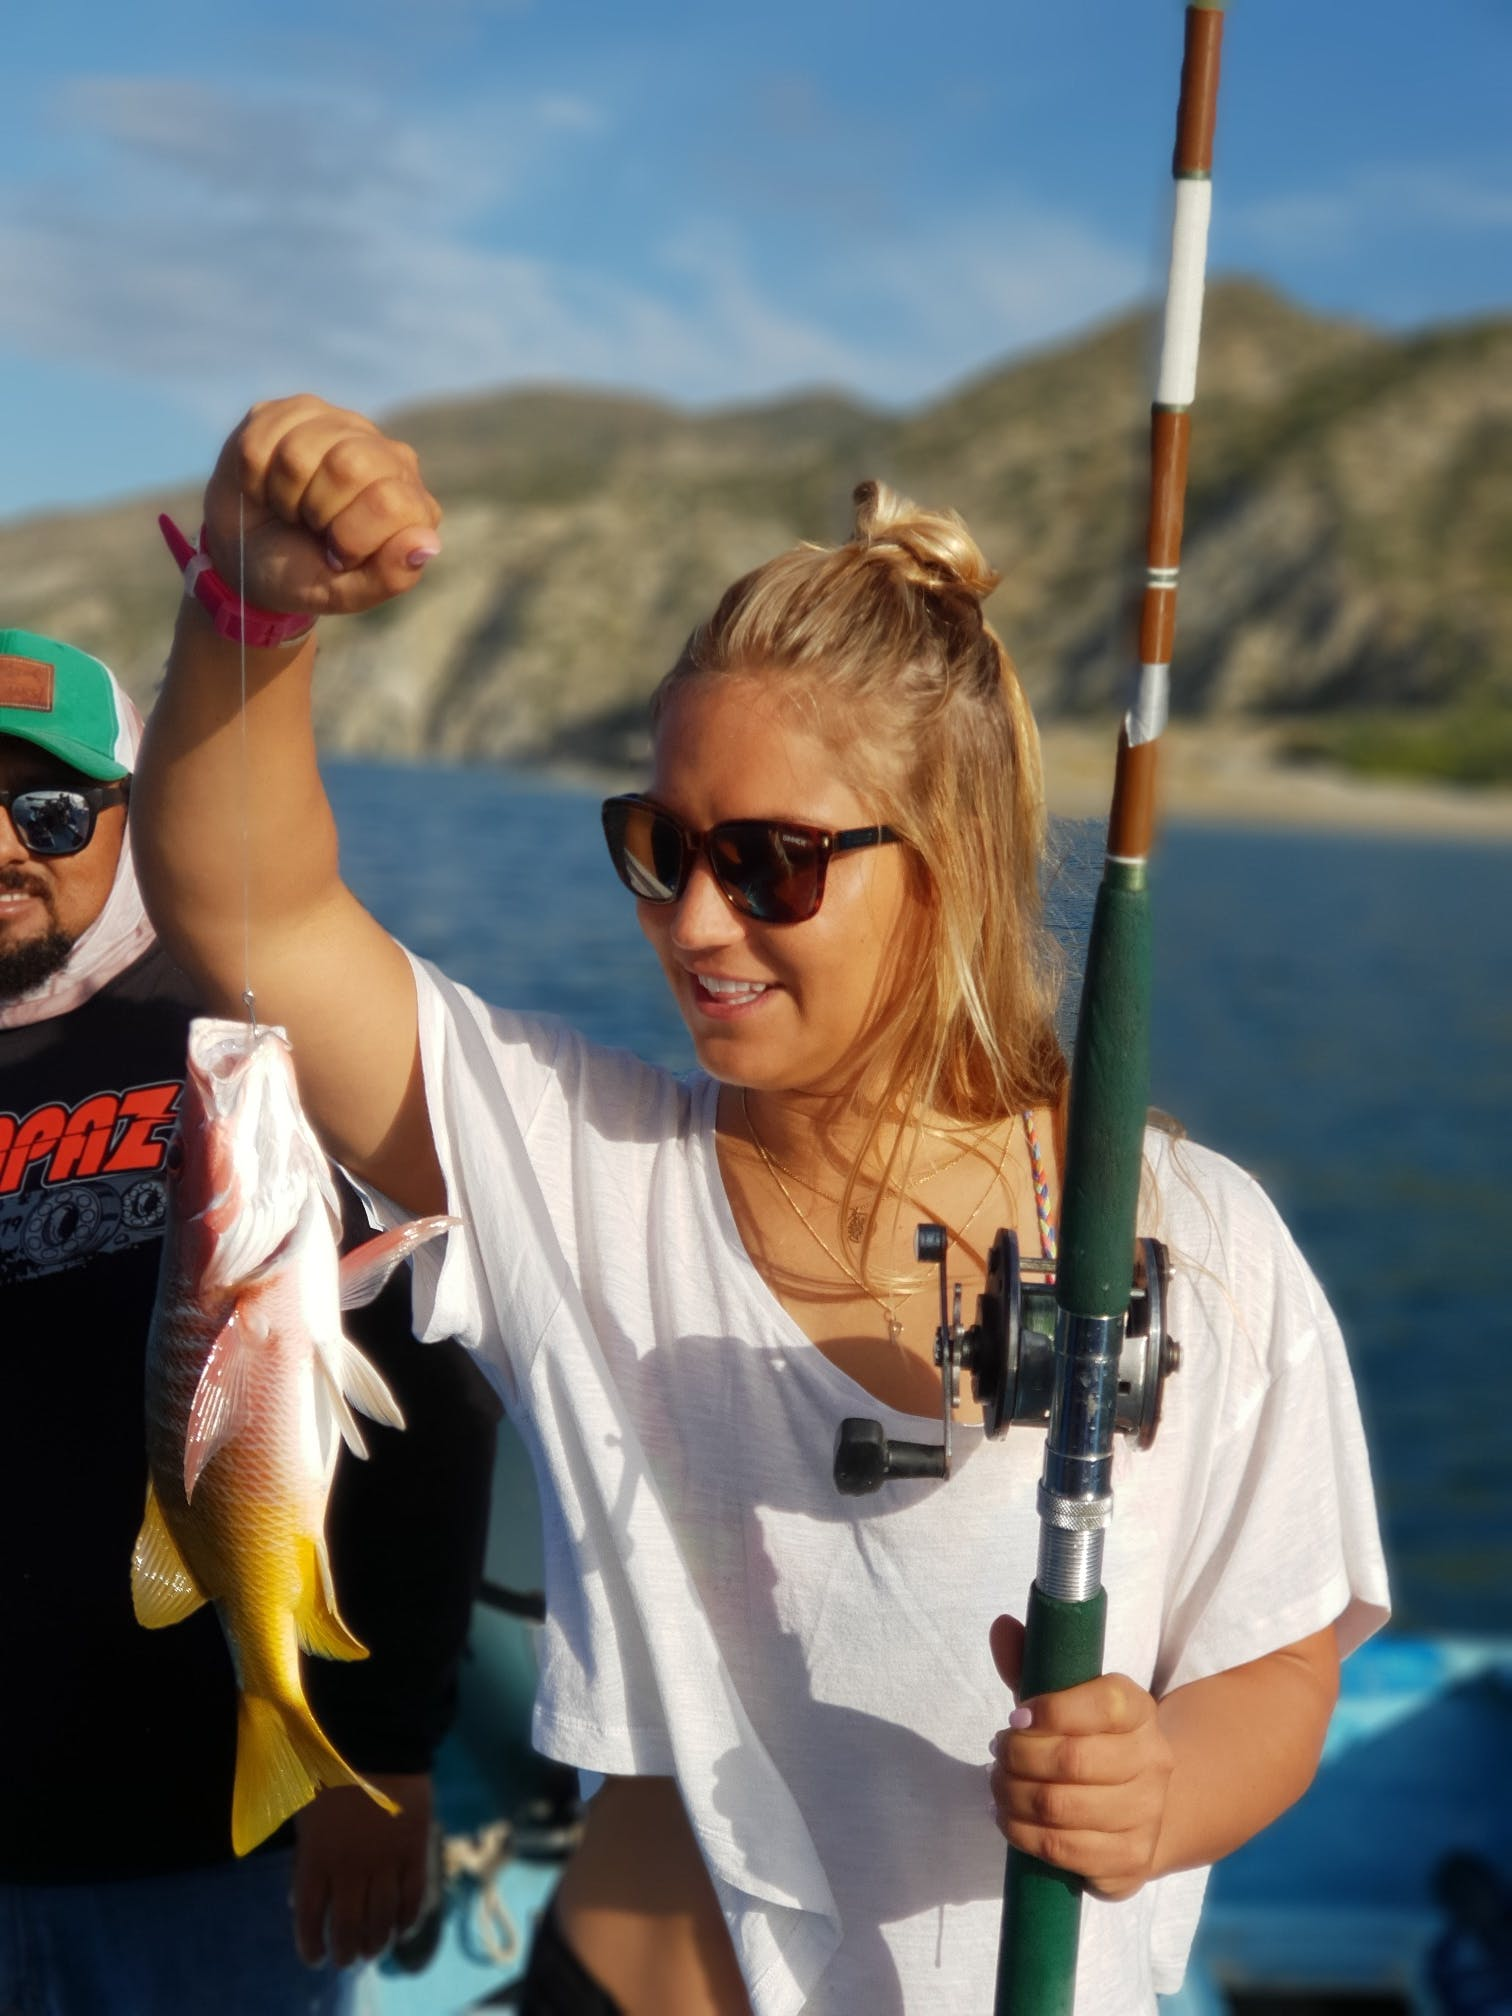 Fishing in La Ventana is something amazing! Take kayka from ChiloChill.